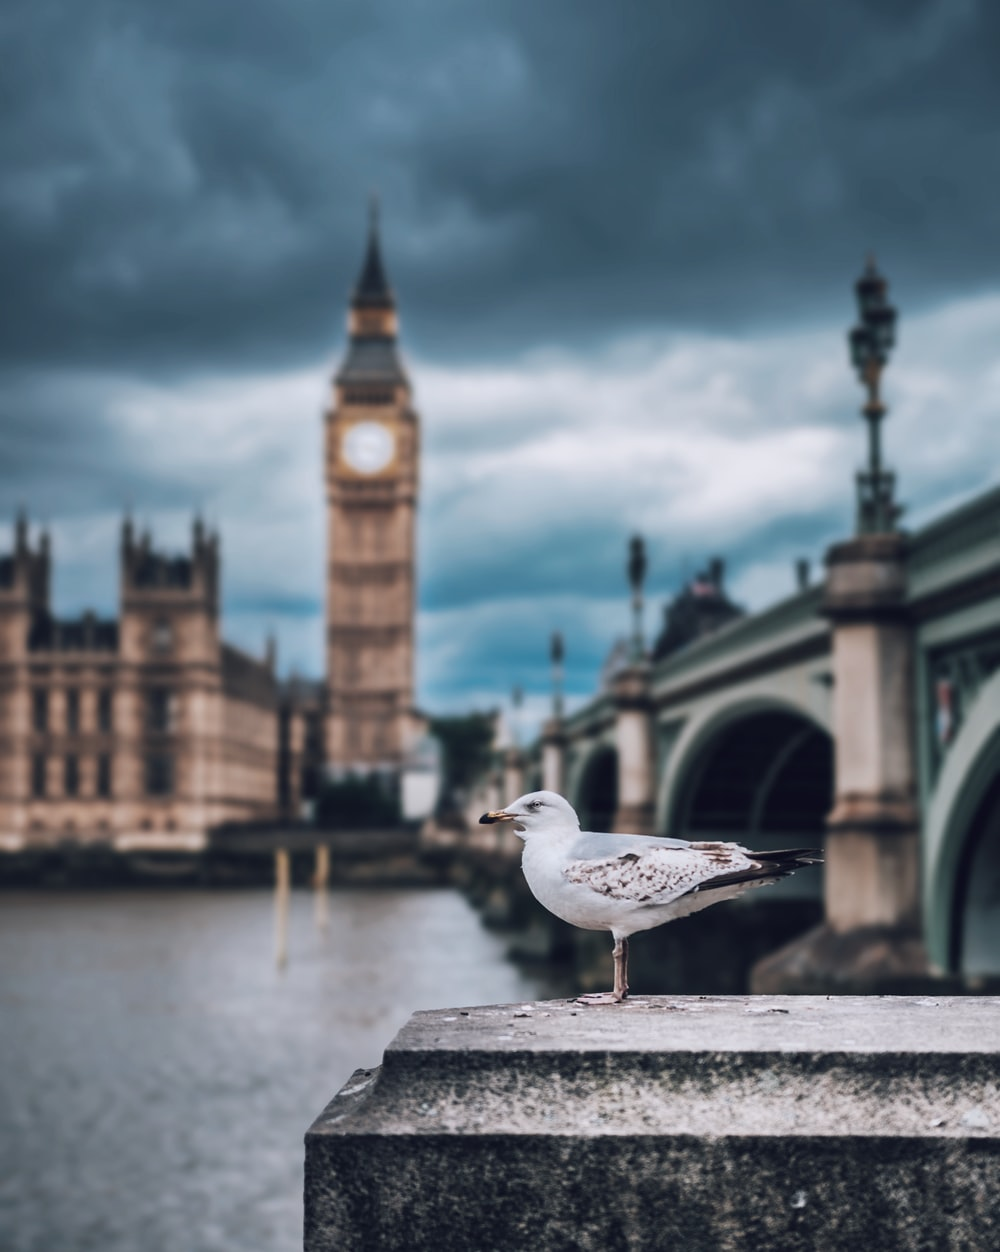 shallow focus photography of seagull and Big Ben in London